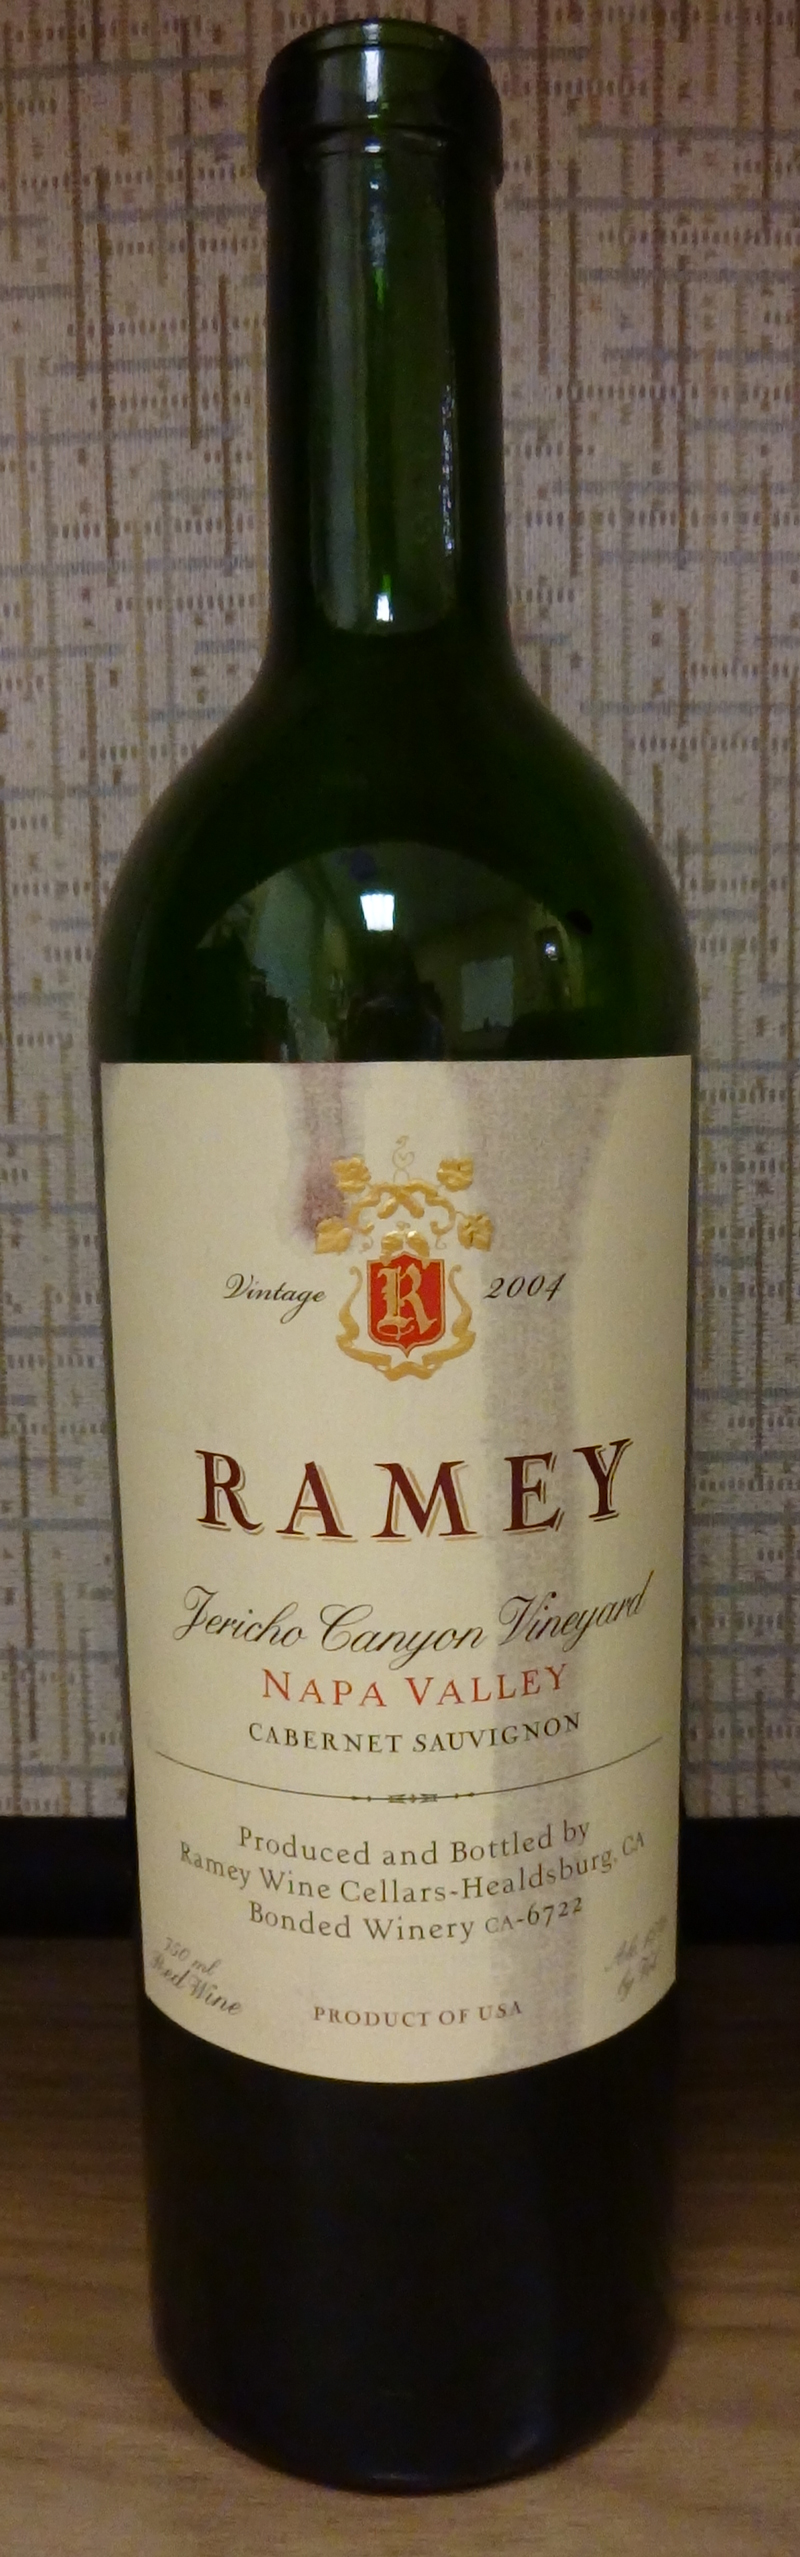 2004-Ramey-Bottle